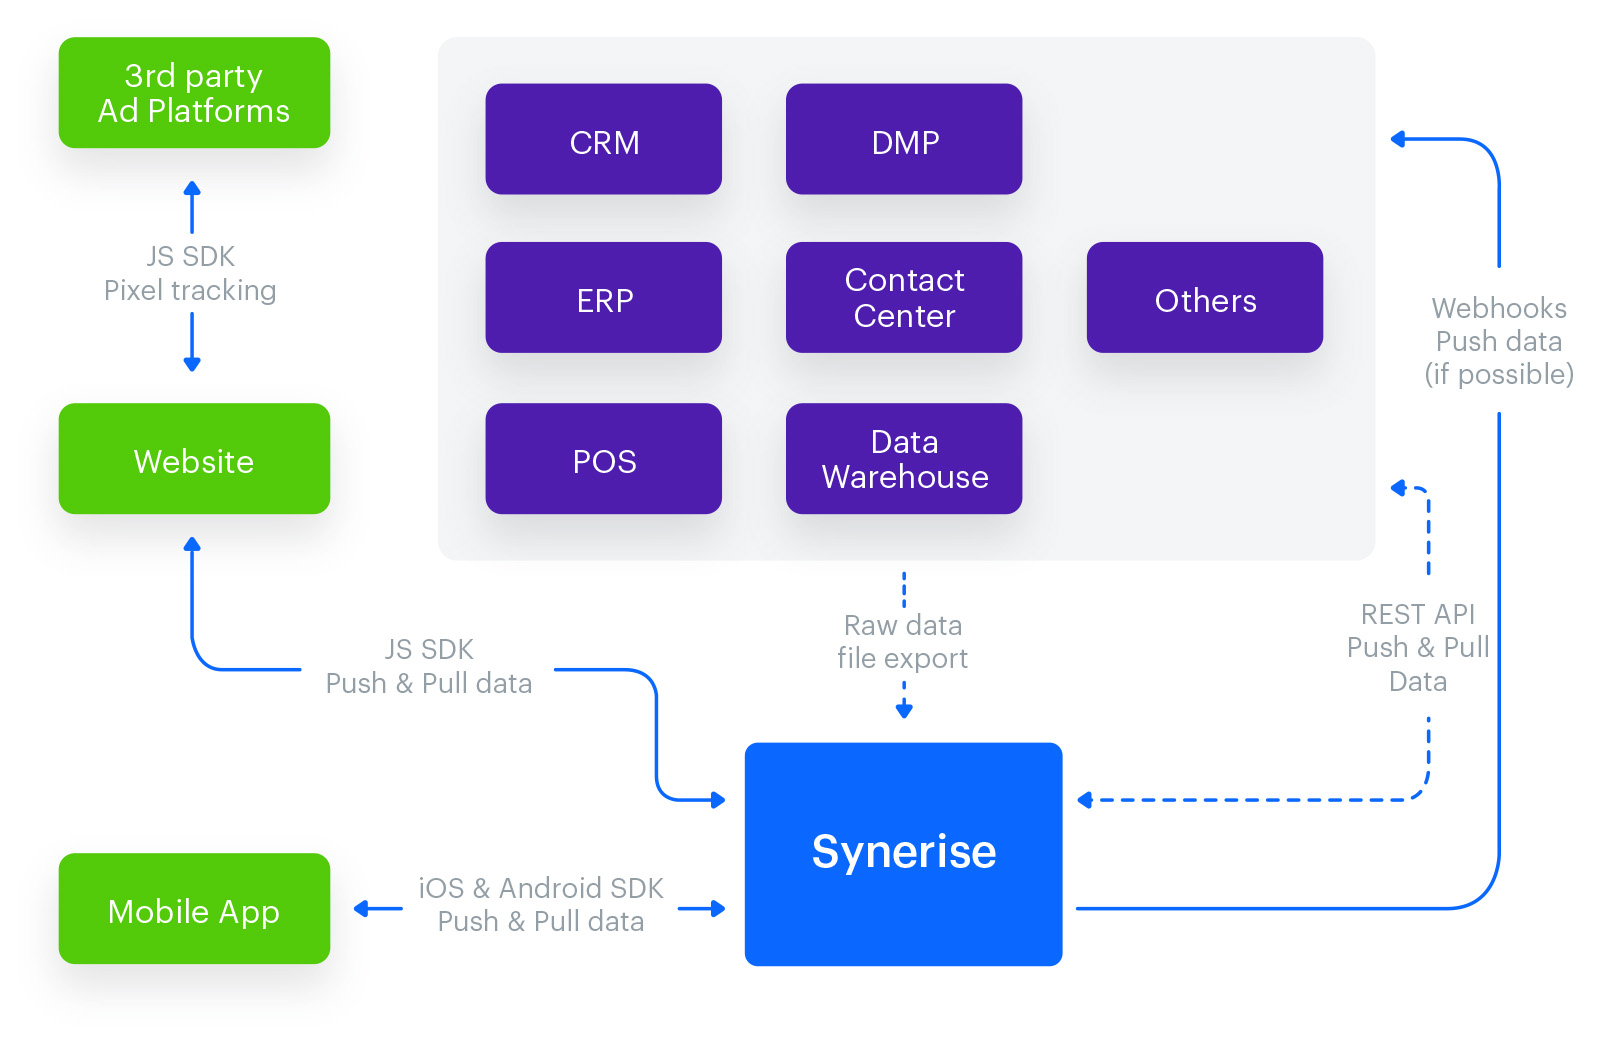 Synerise process of gathering data from different sources